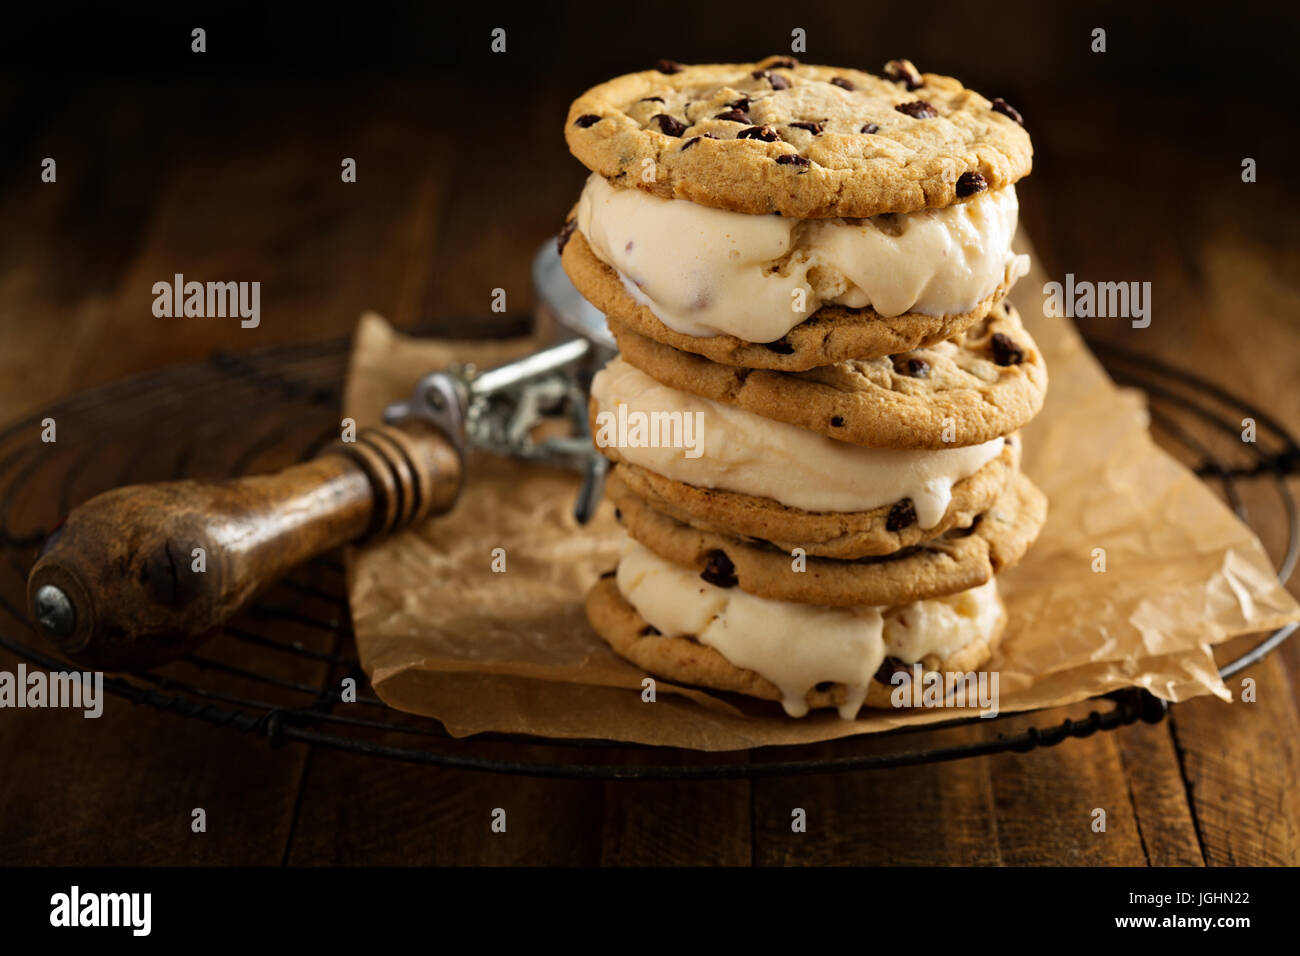 Ice cream sandwiches with chocolate chip cookies - Stock Image